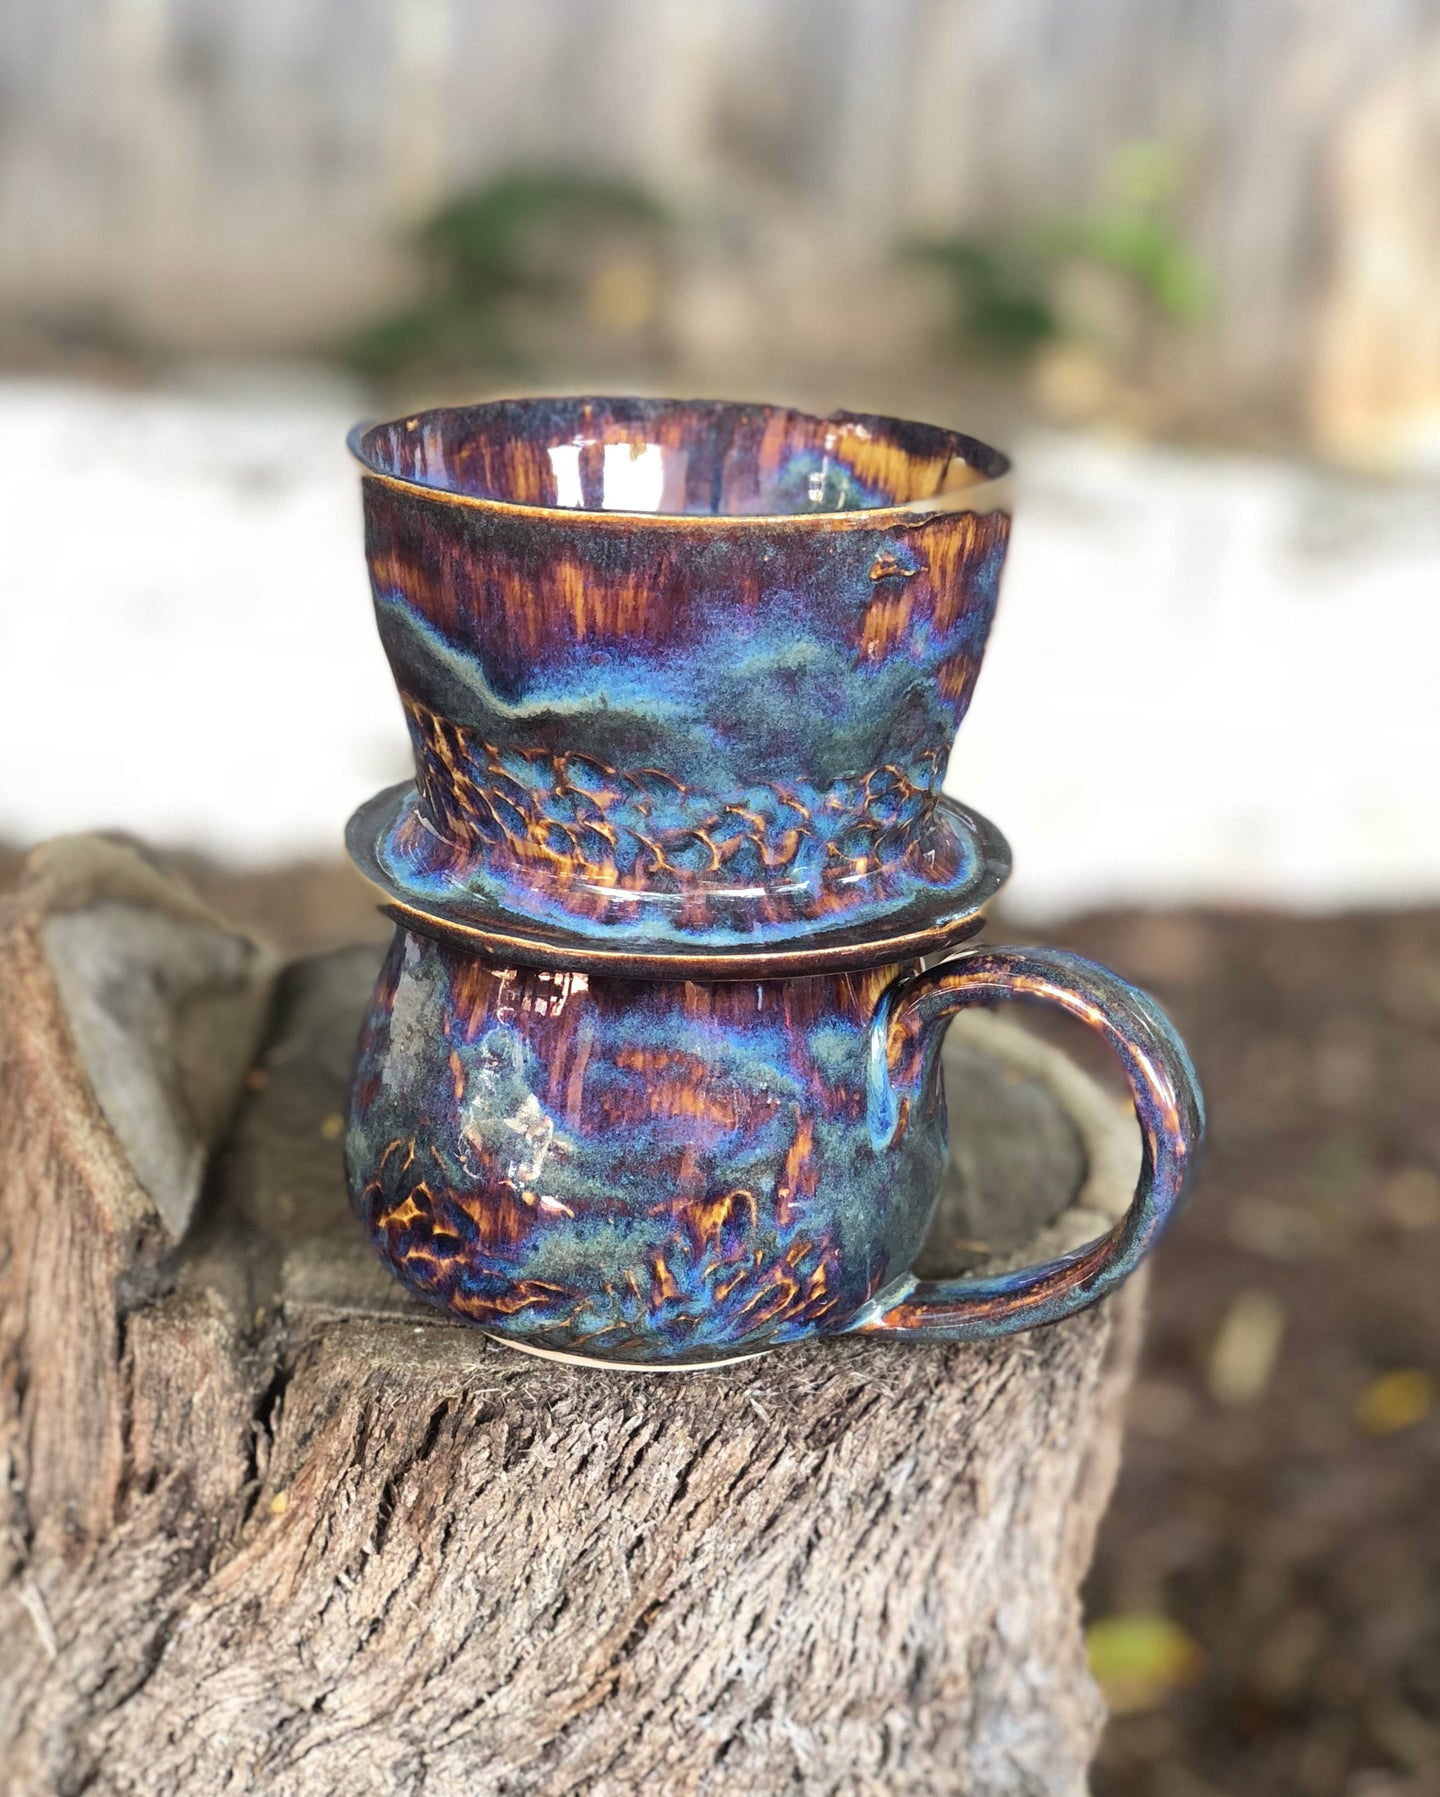 SALE! Drippy Aurora Personal Coffee Dripper and Coffee Mug Set 12 oz - Hsiaowan Studios Handmade Ceramics Pottery